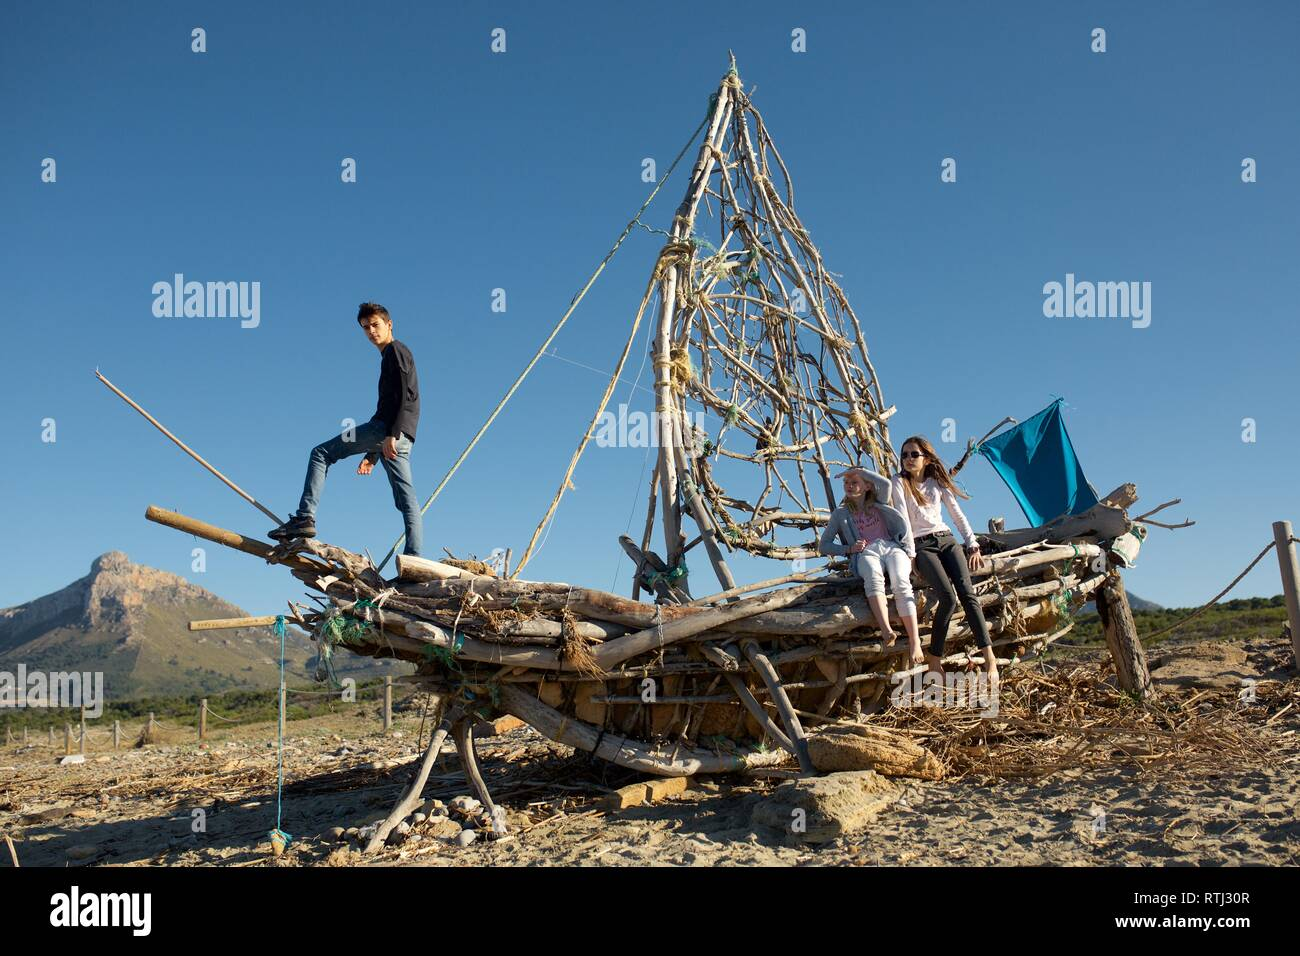 Wild Kids Castaway on Driftwood Ship on the Beach - Stock Image